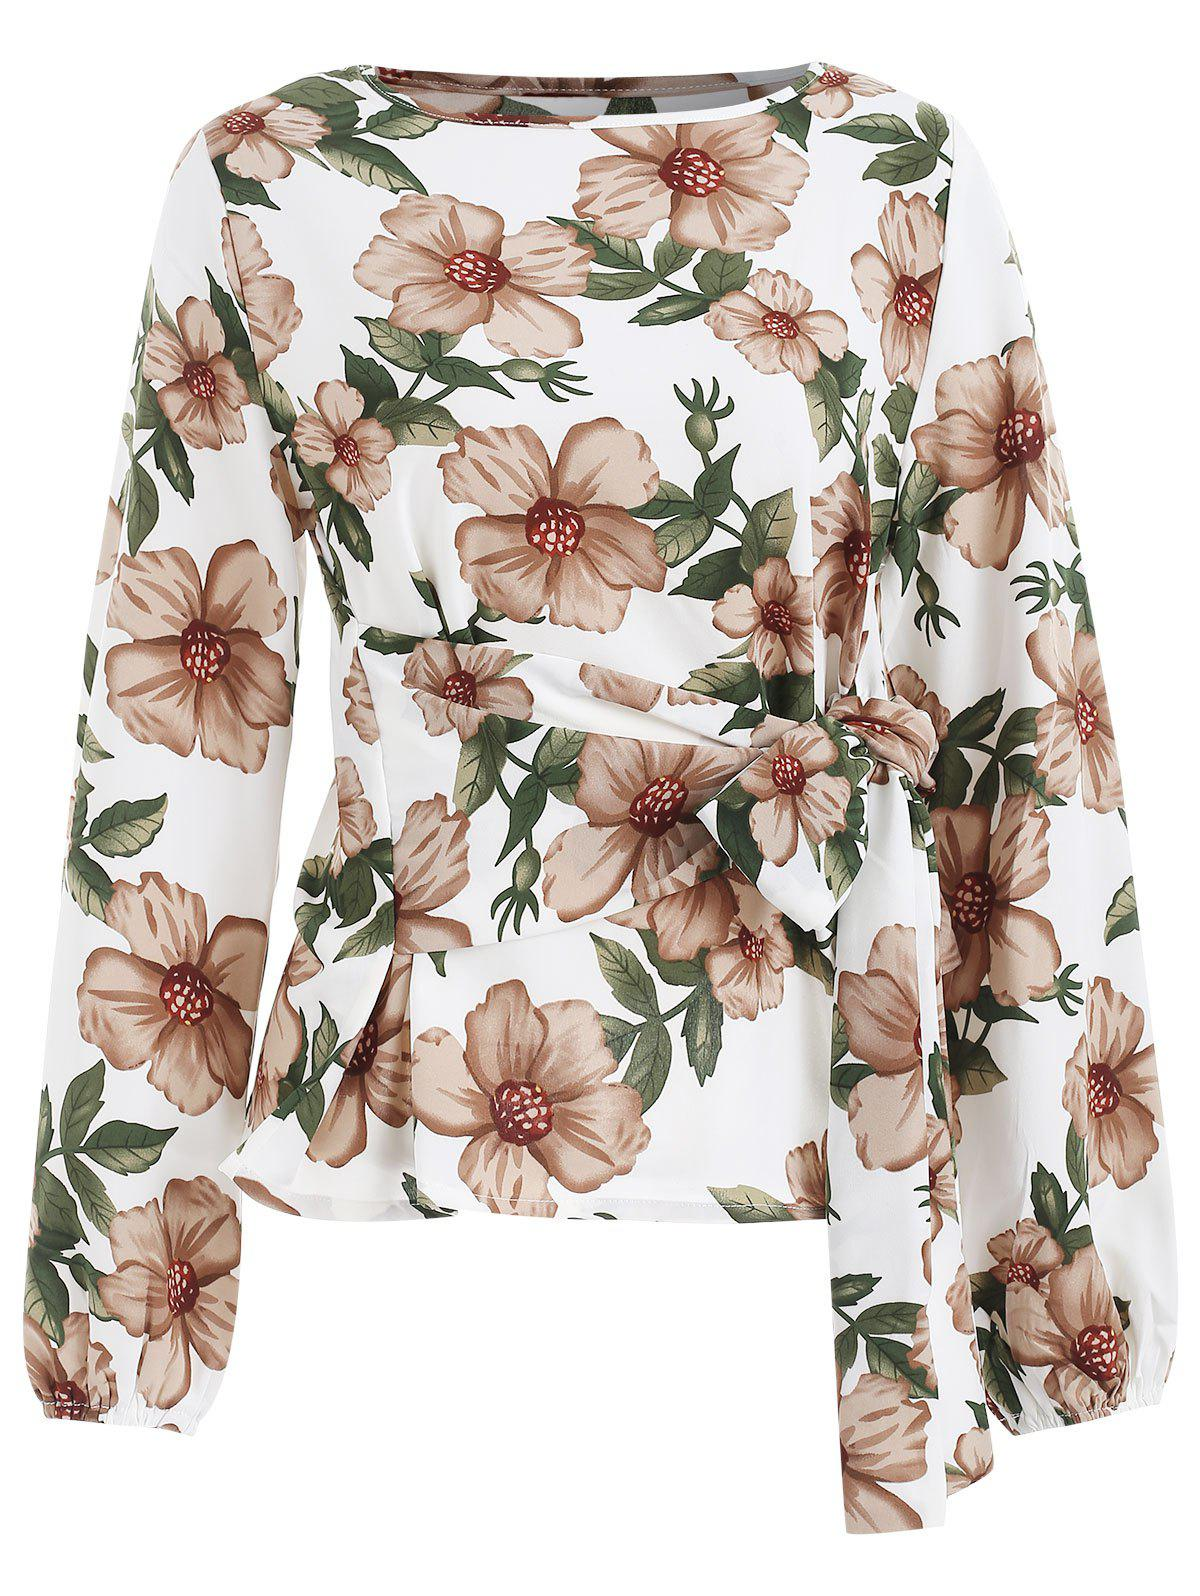 Latest Floral Print Full Sleeve Blouse with Tie